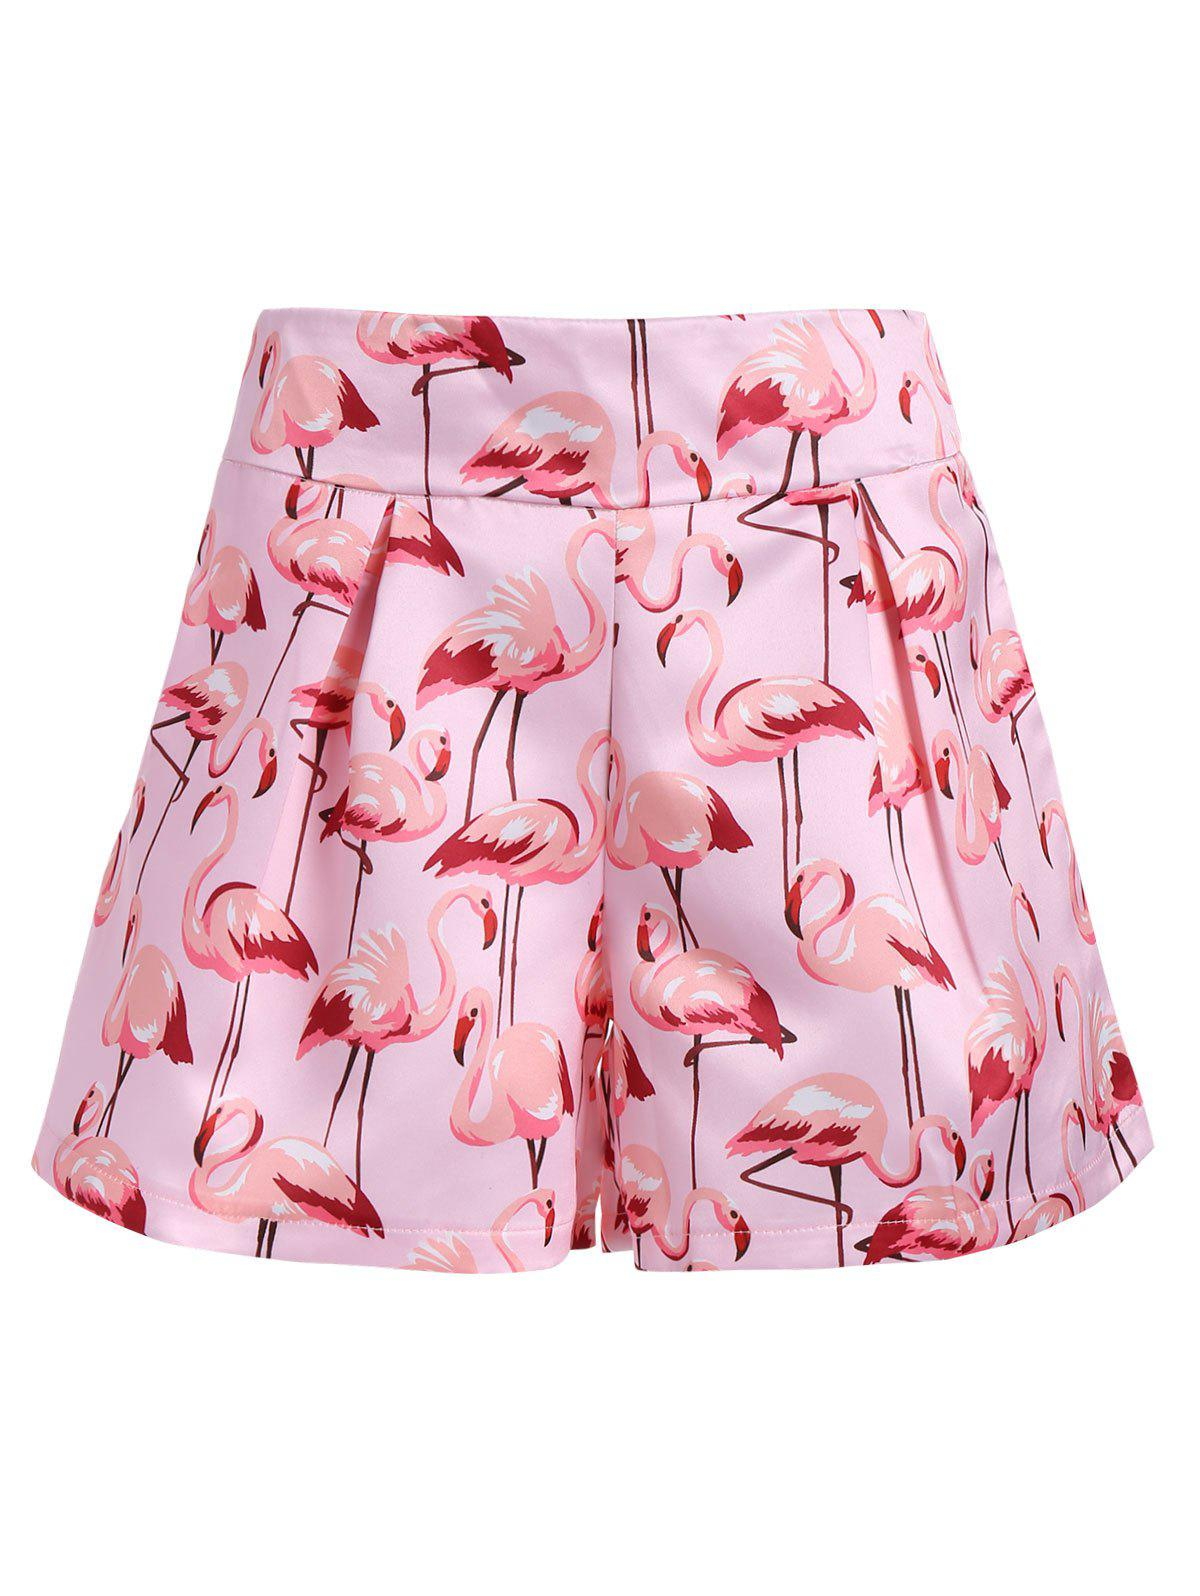 High Waist Flamingo Print Mini Shorts - LIGHT PINK L